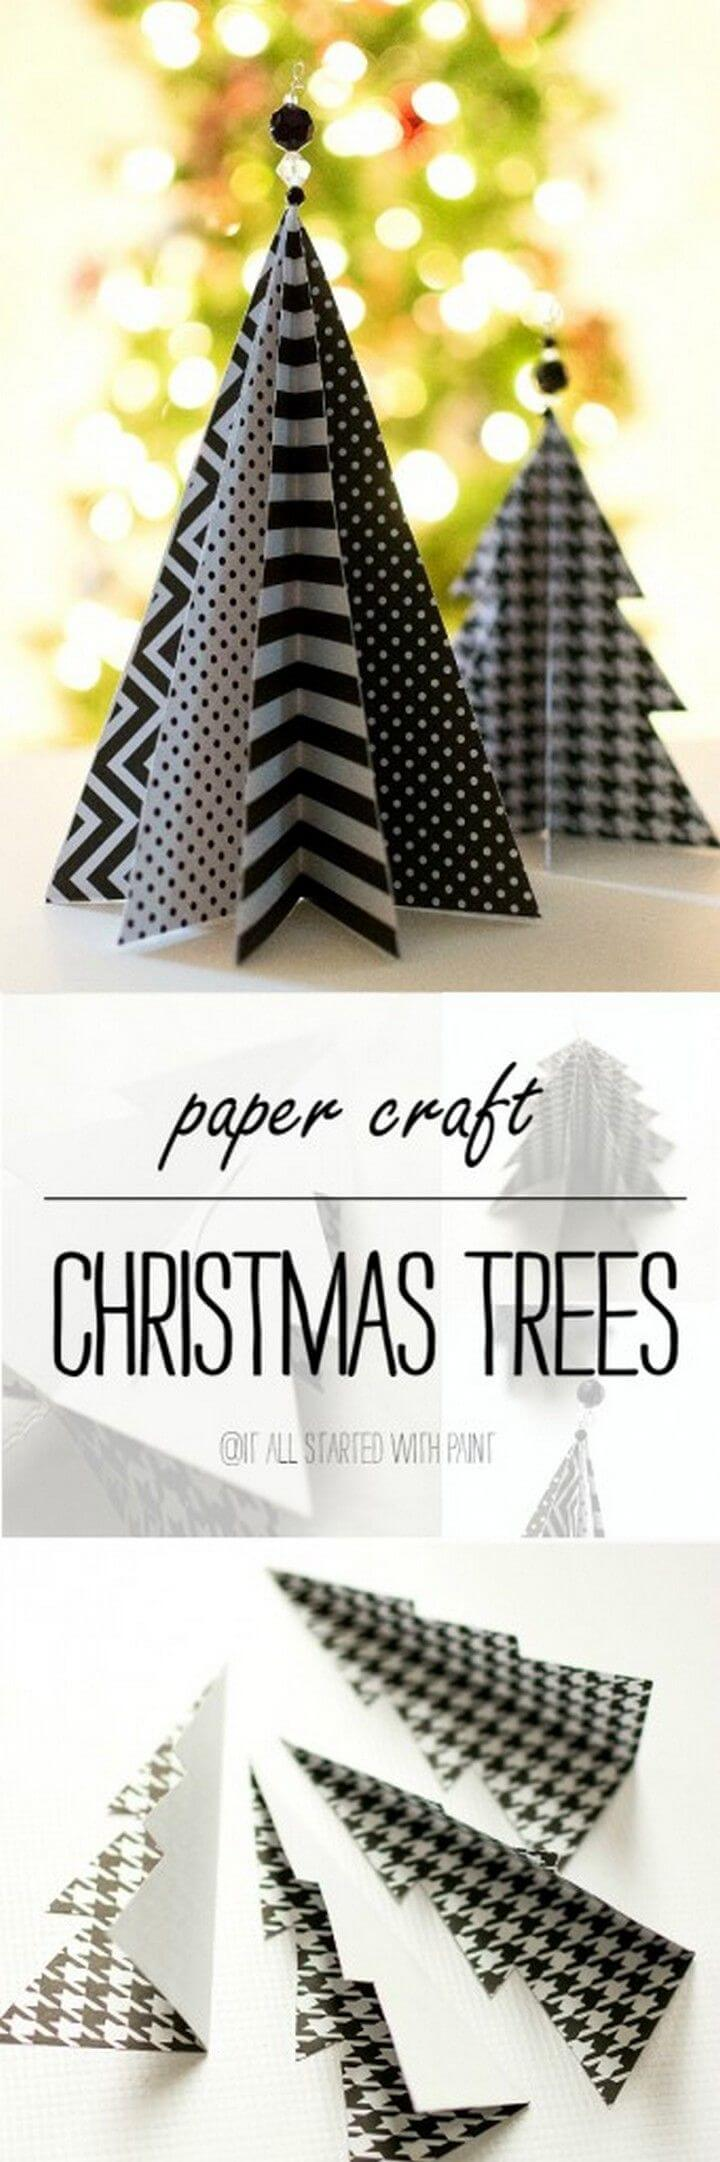 paper decor crafts ideas 22